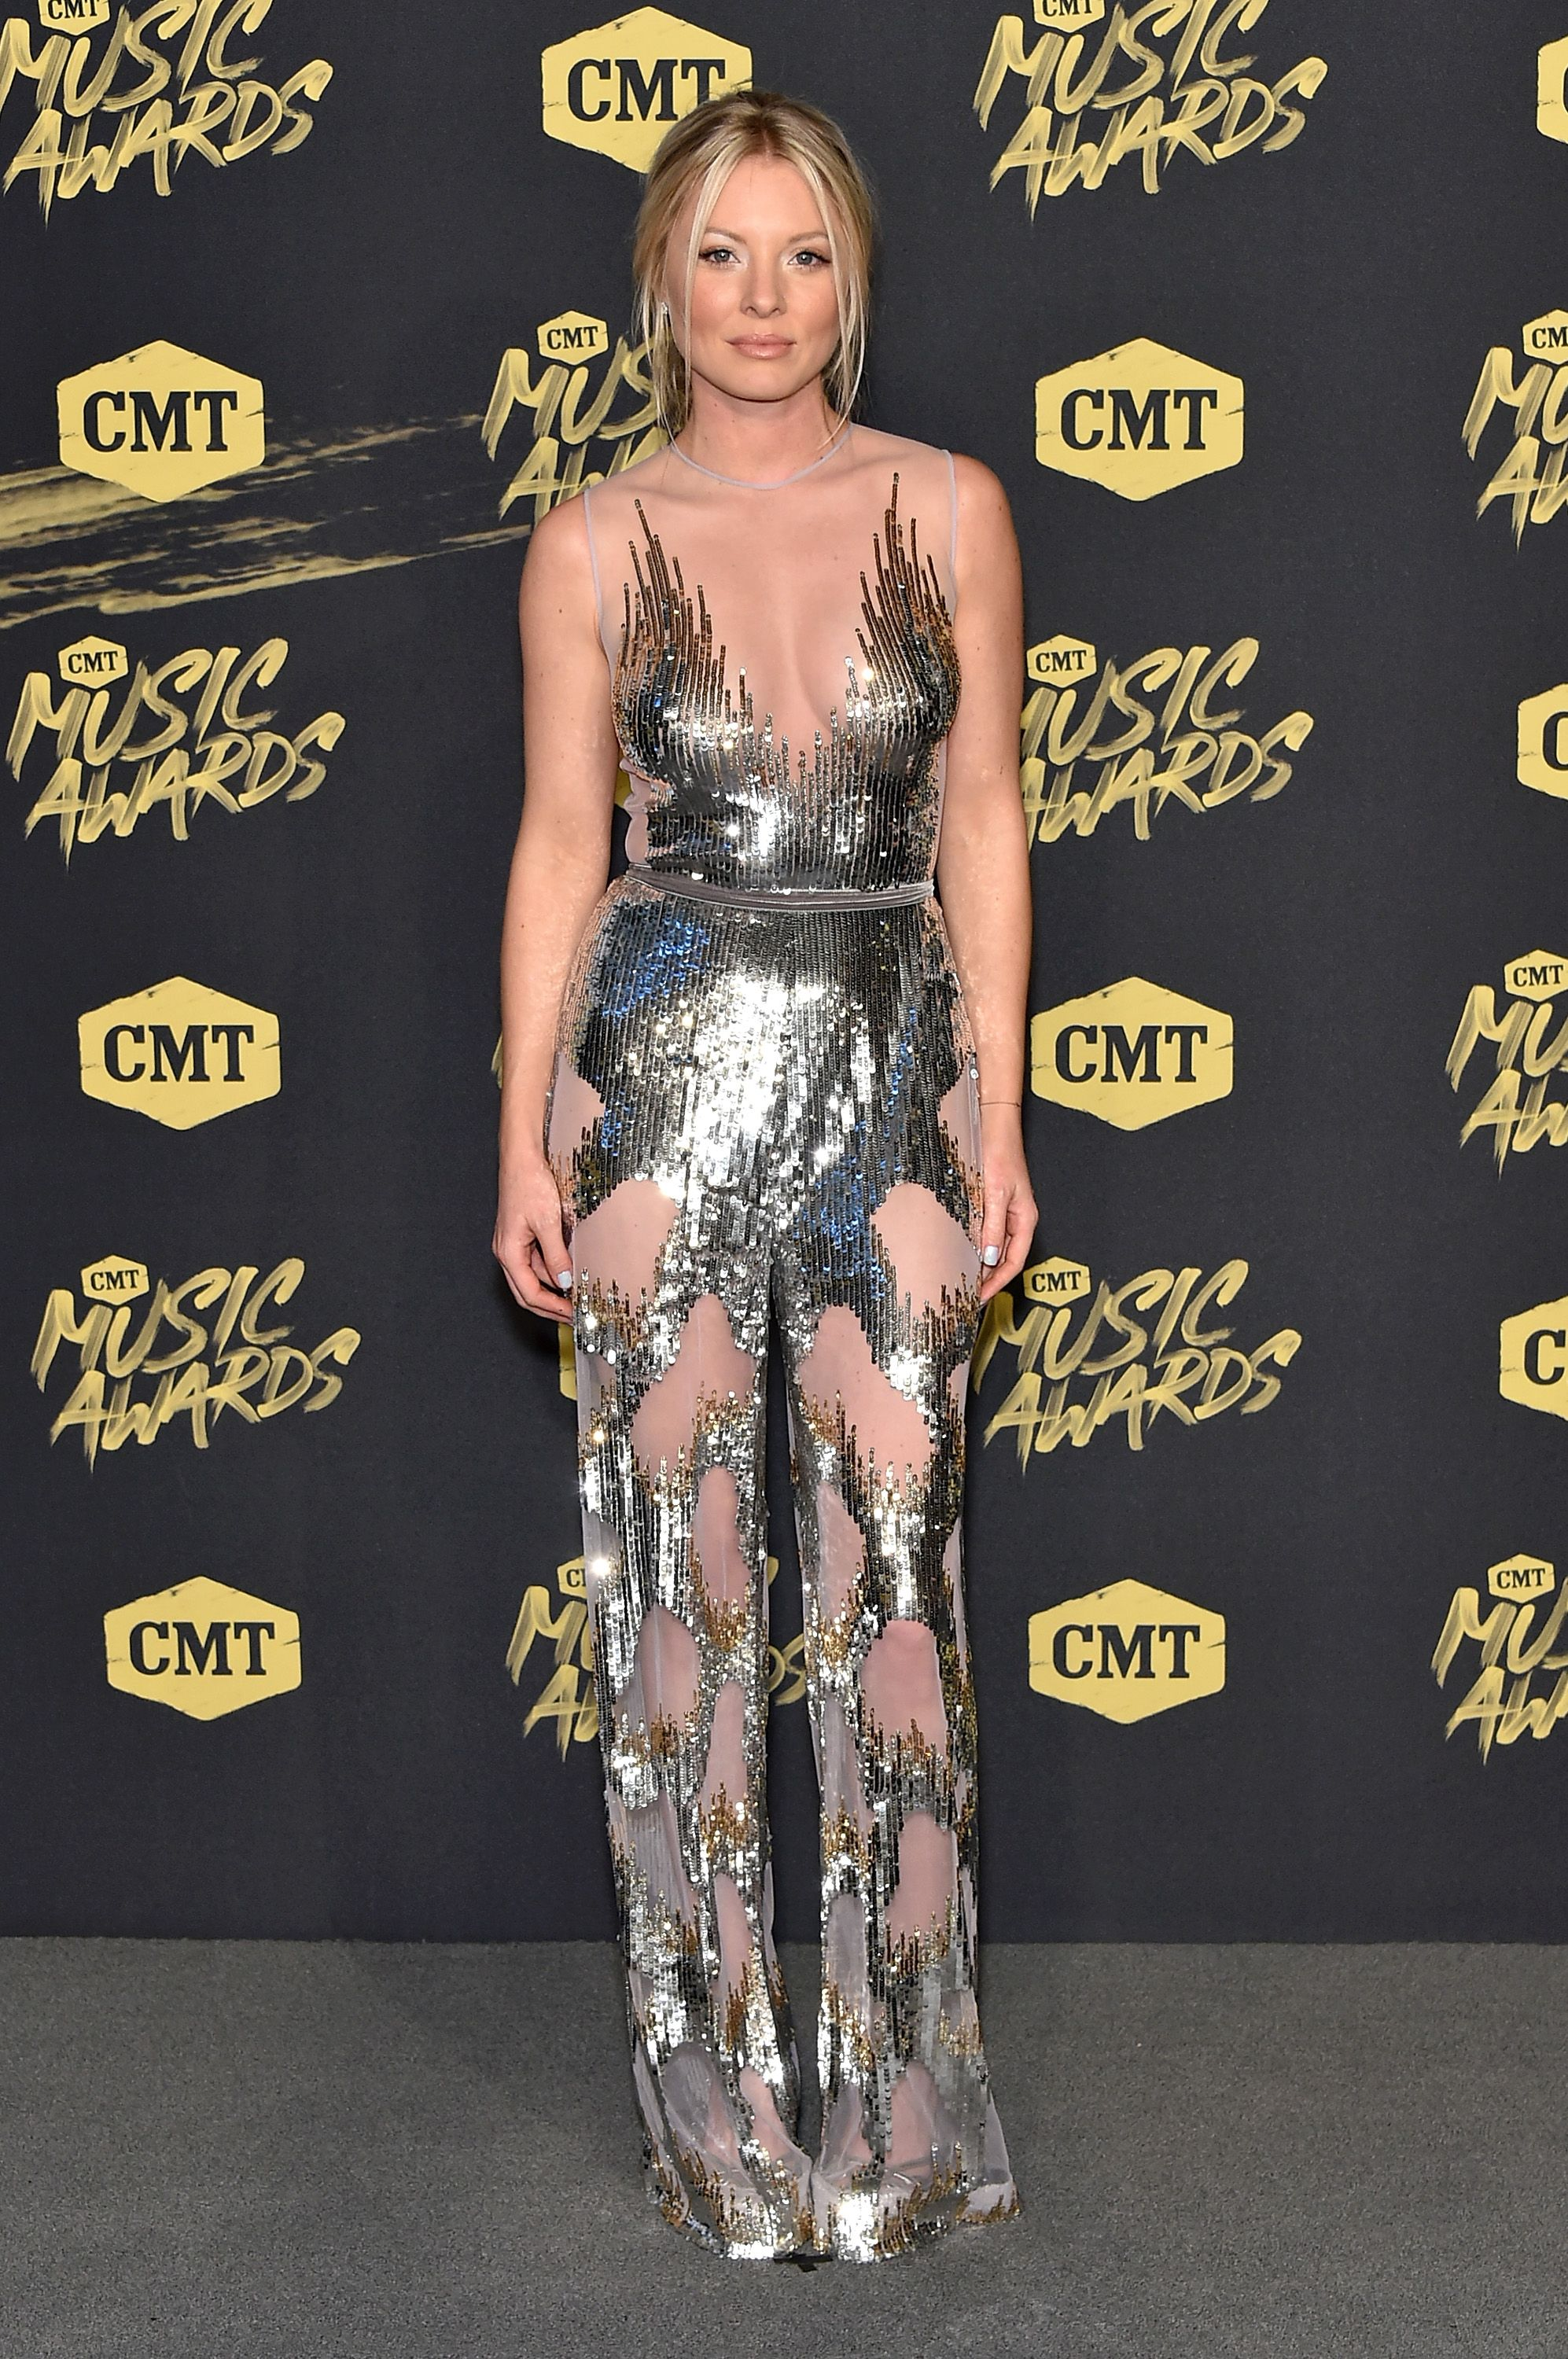 The Most Scandalous Dresses at the 2018 CMT Awards Red Carpet